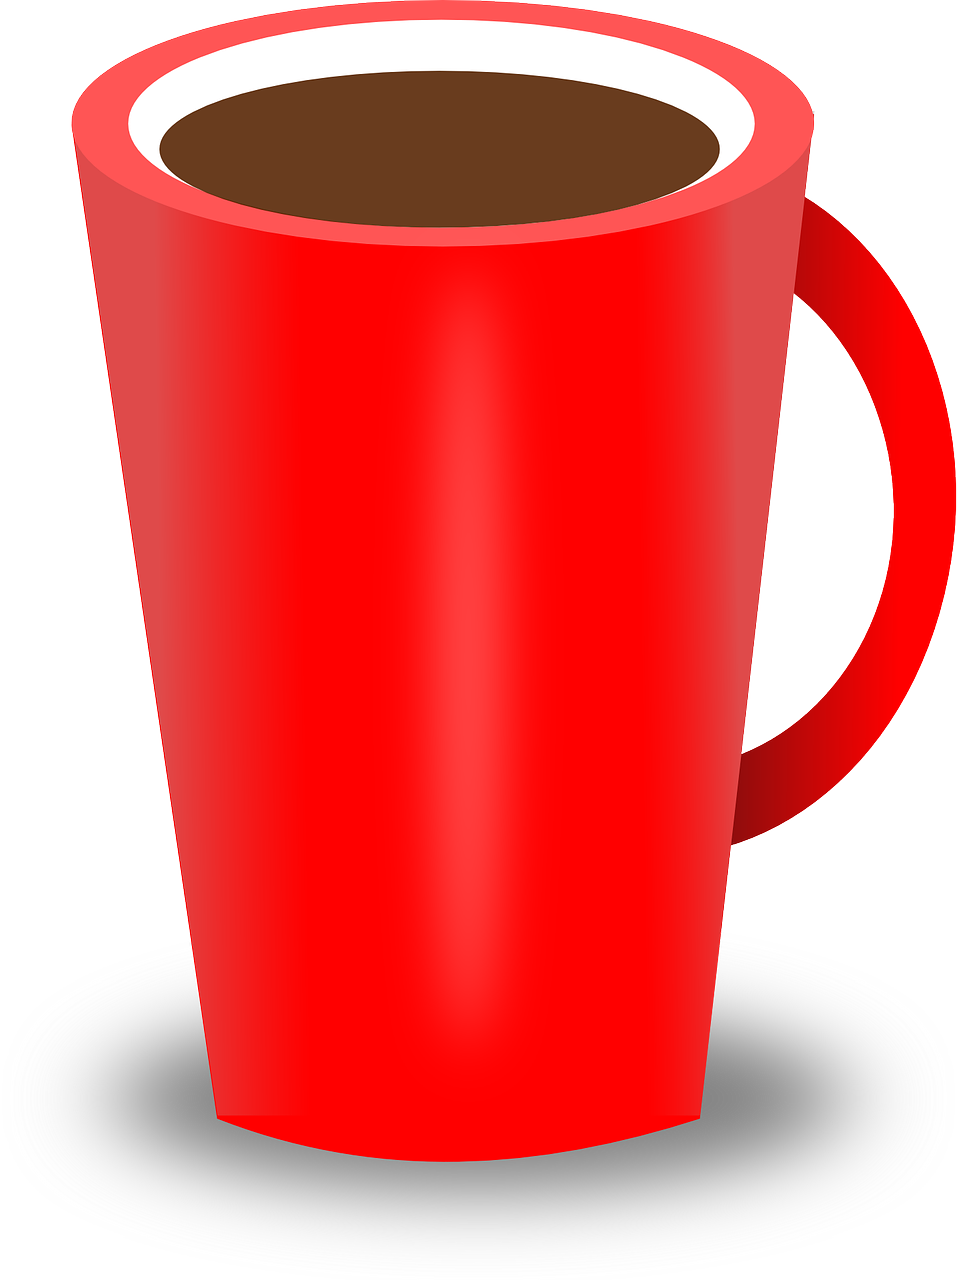 Red clipart coffee. Cup drink hot tea